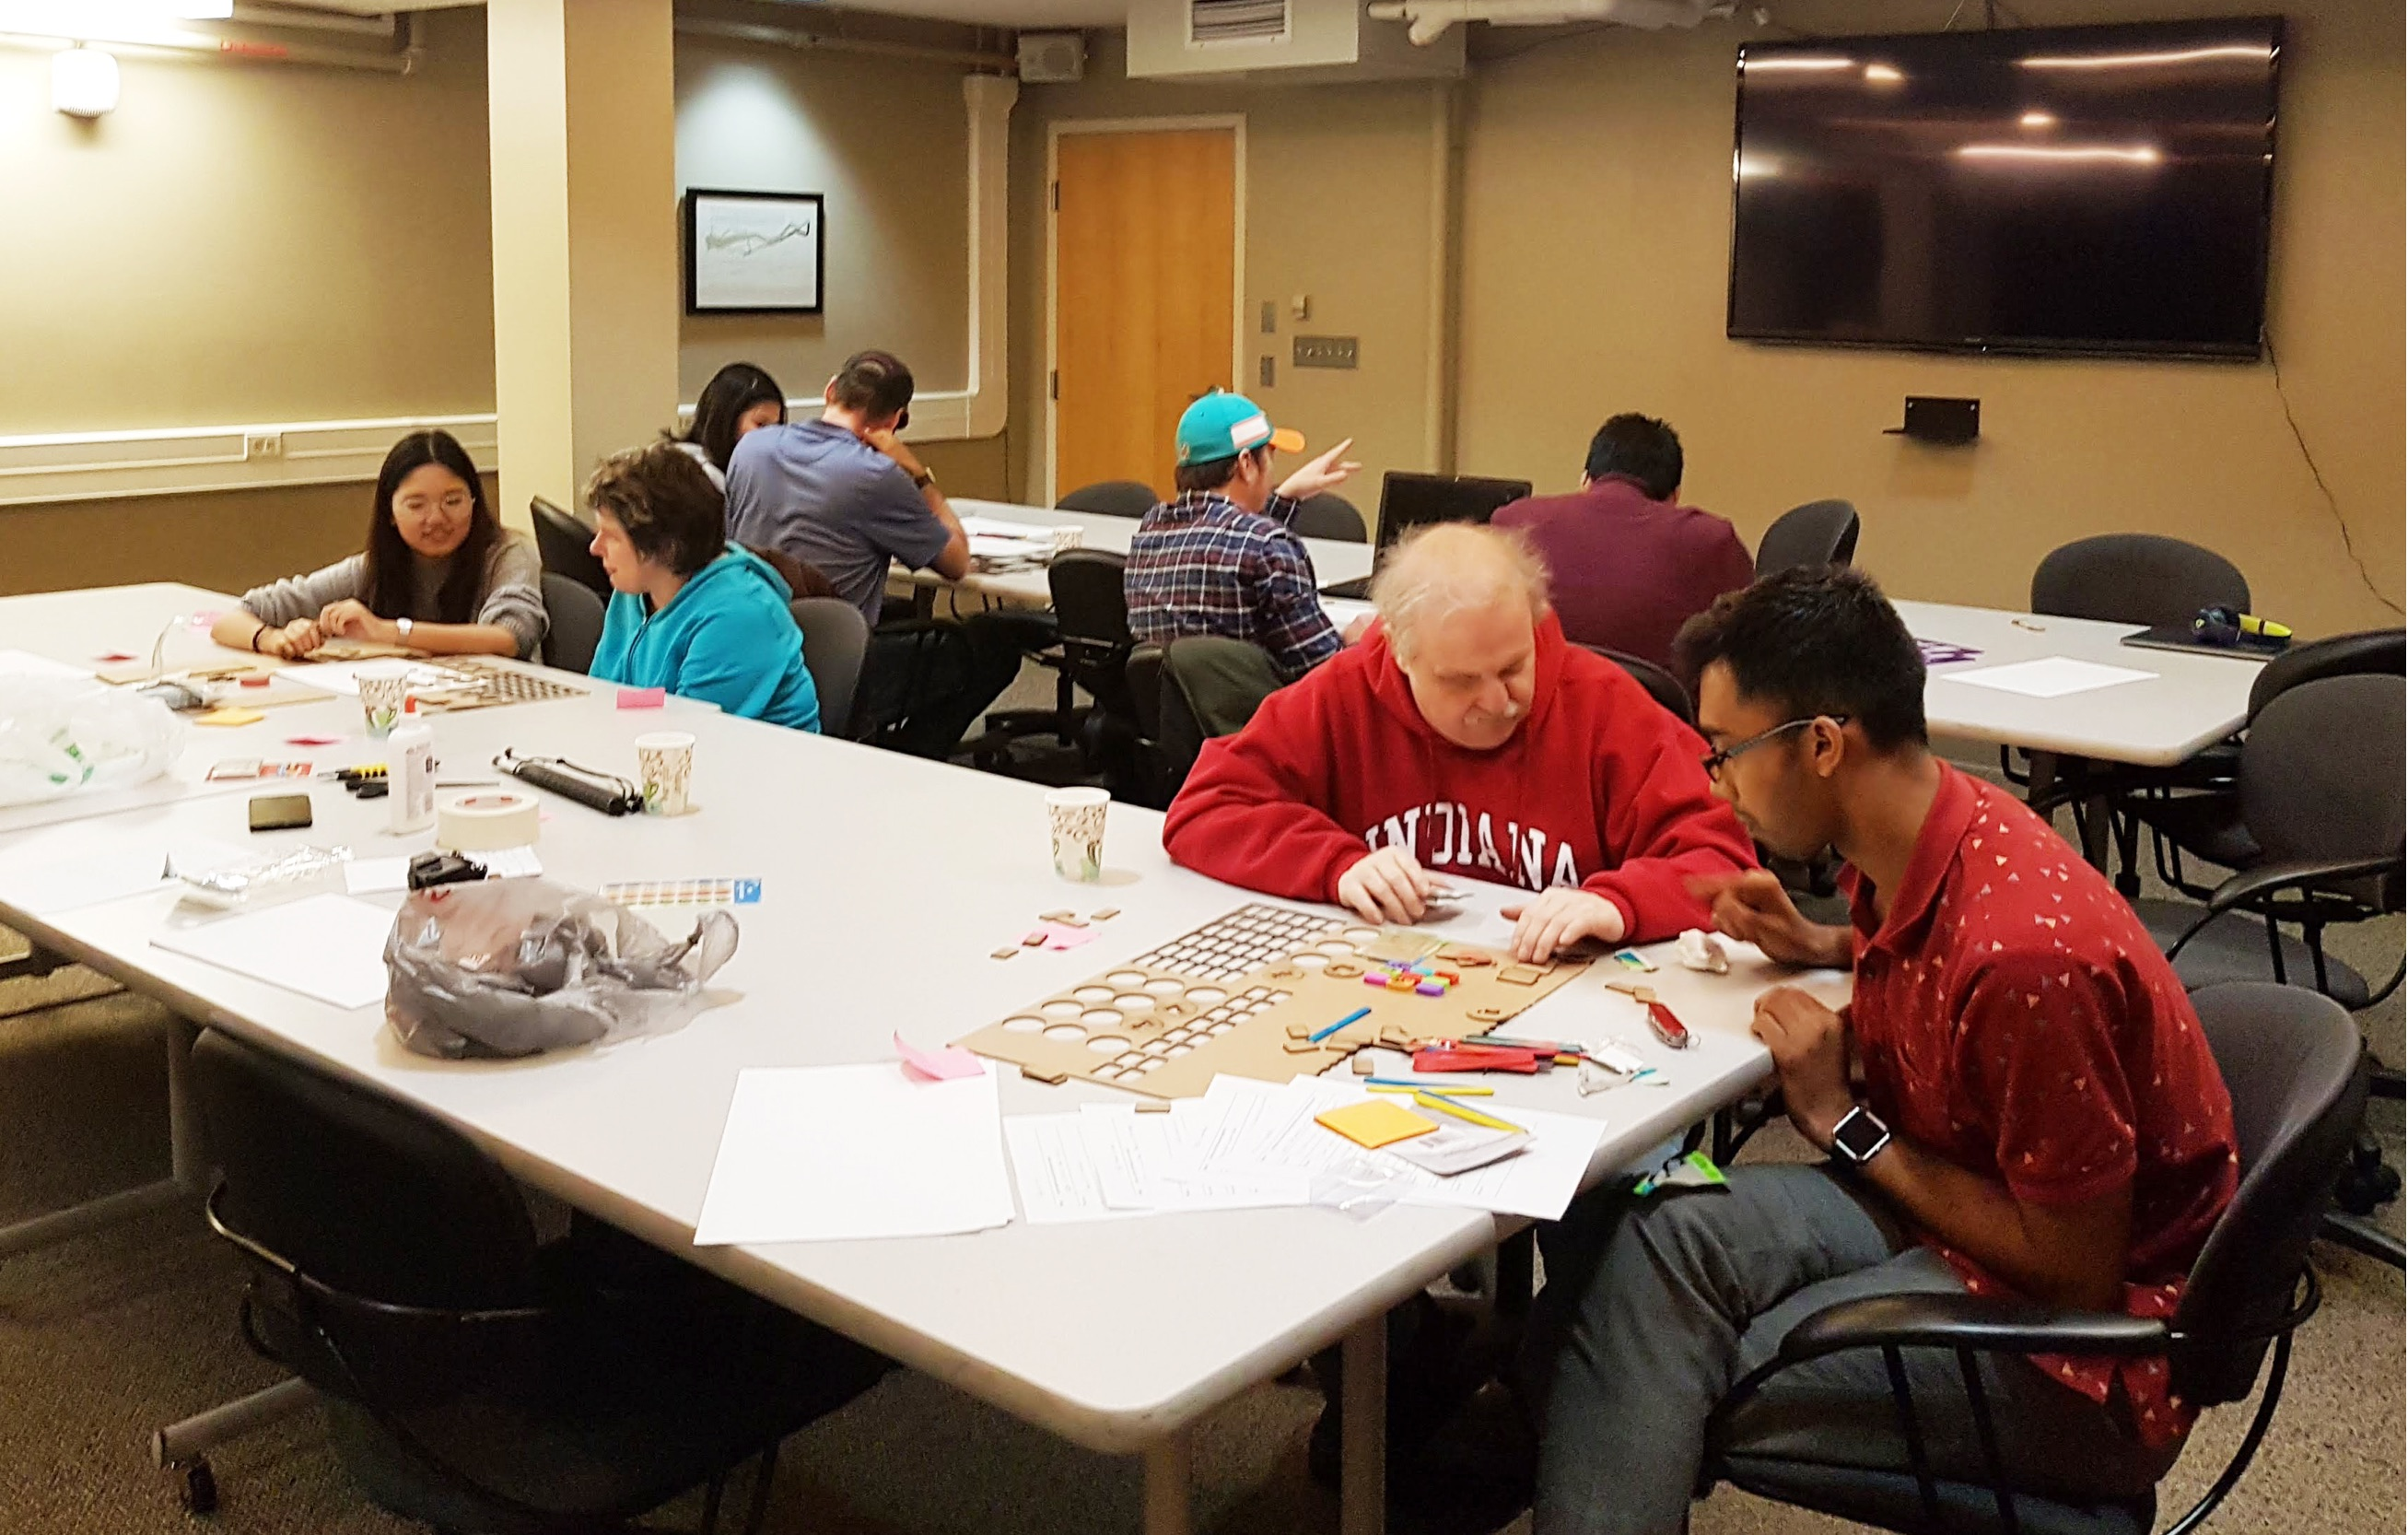 Image showing four visually impaired participants participating in Co-Design workshop where they are creating concepts with design students.